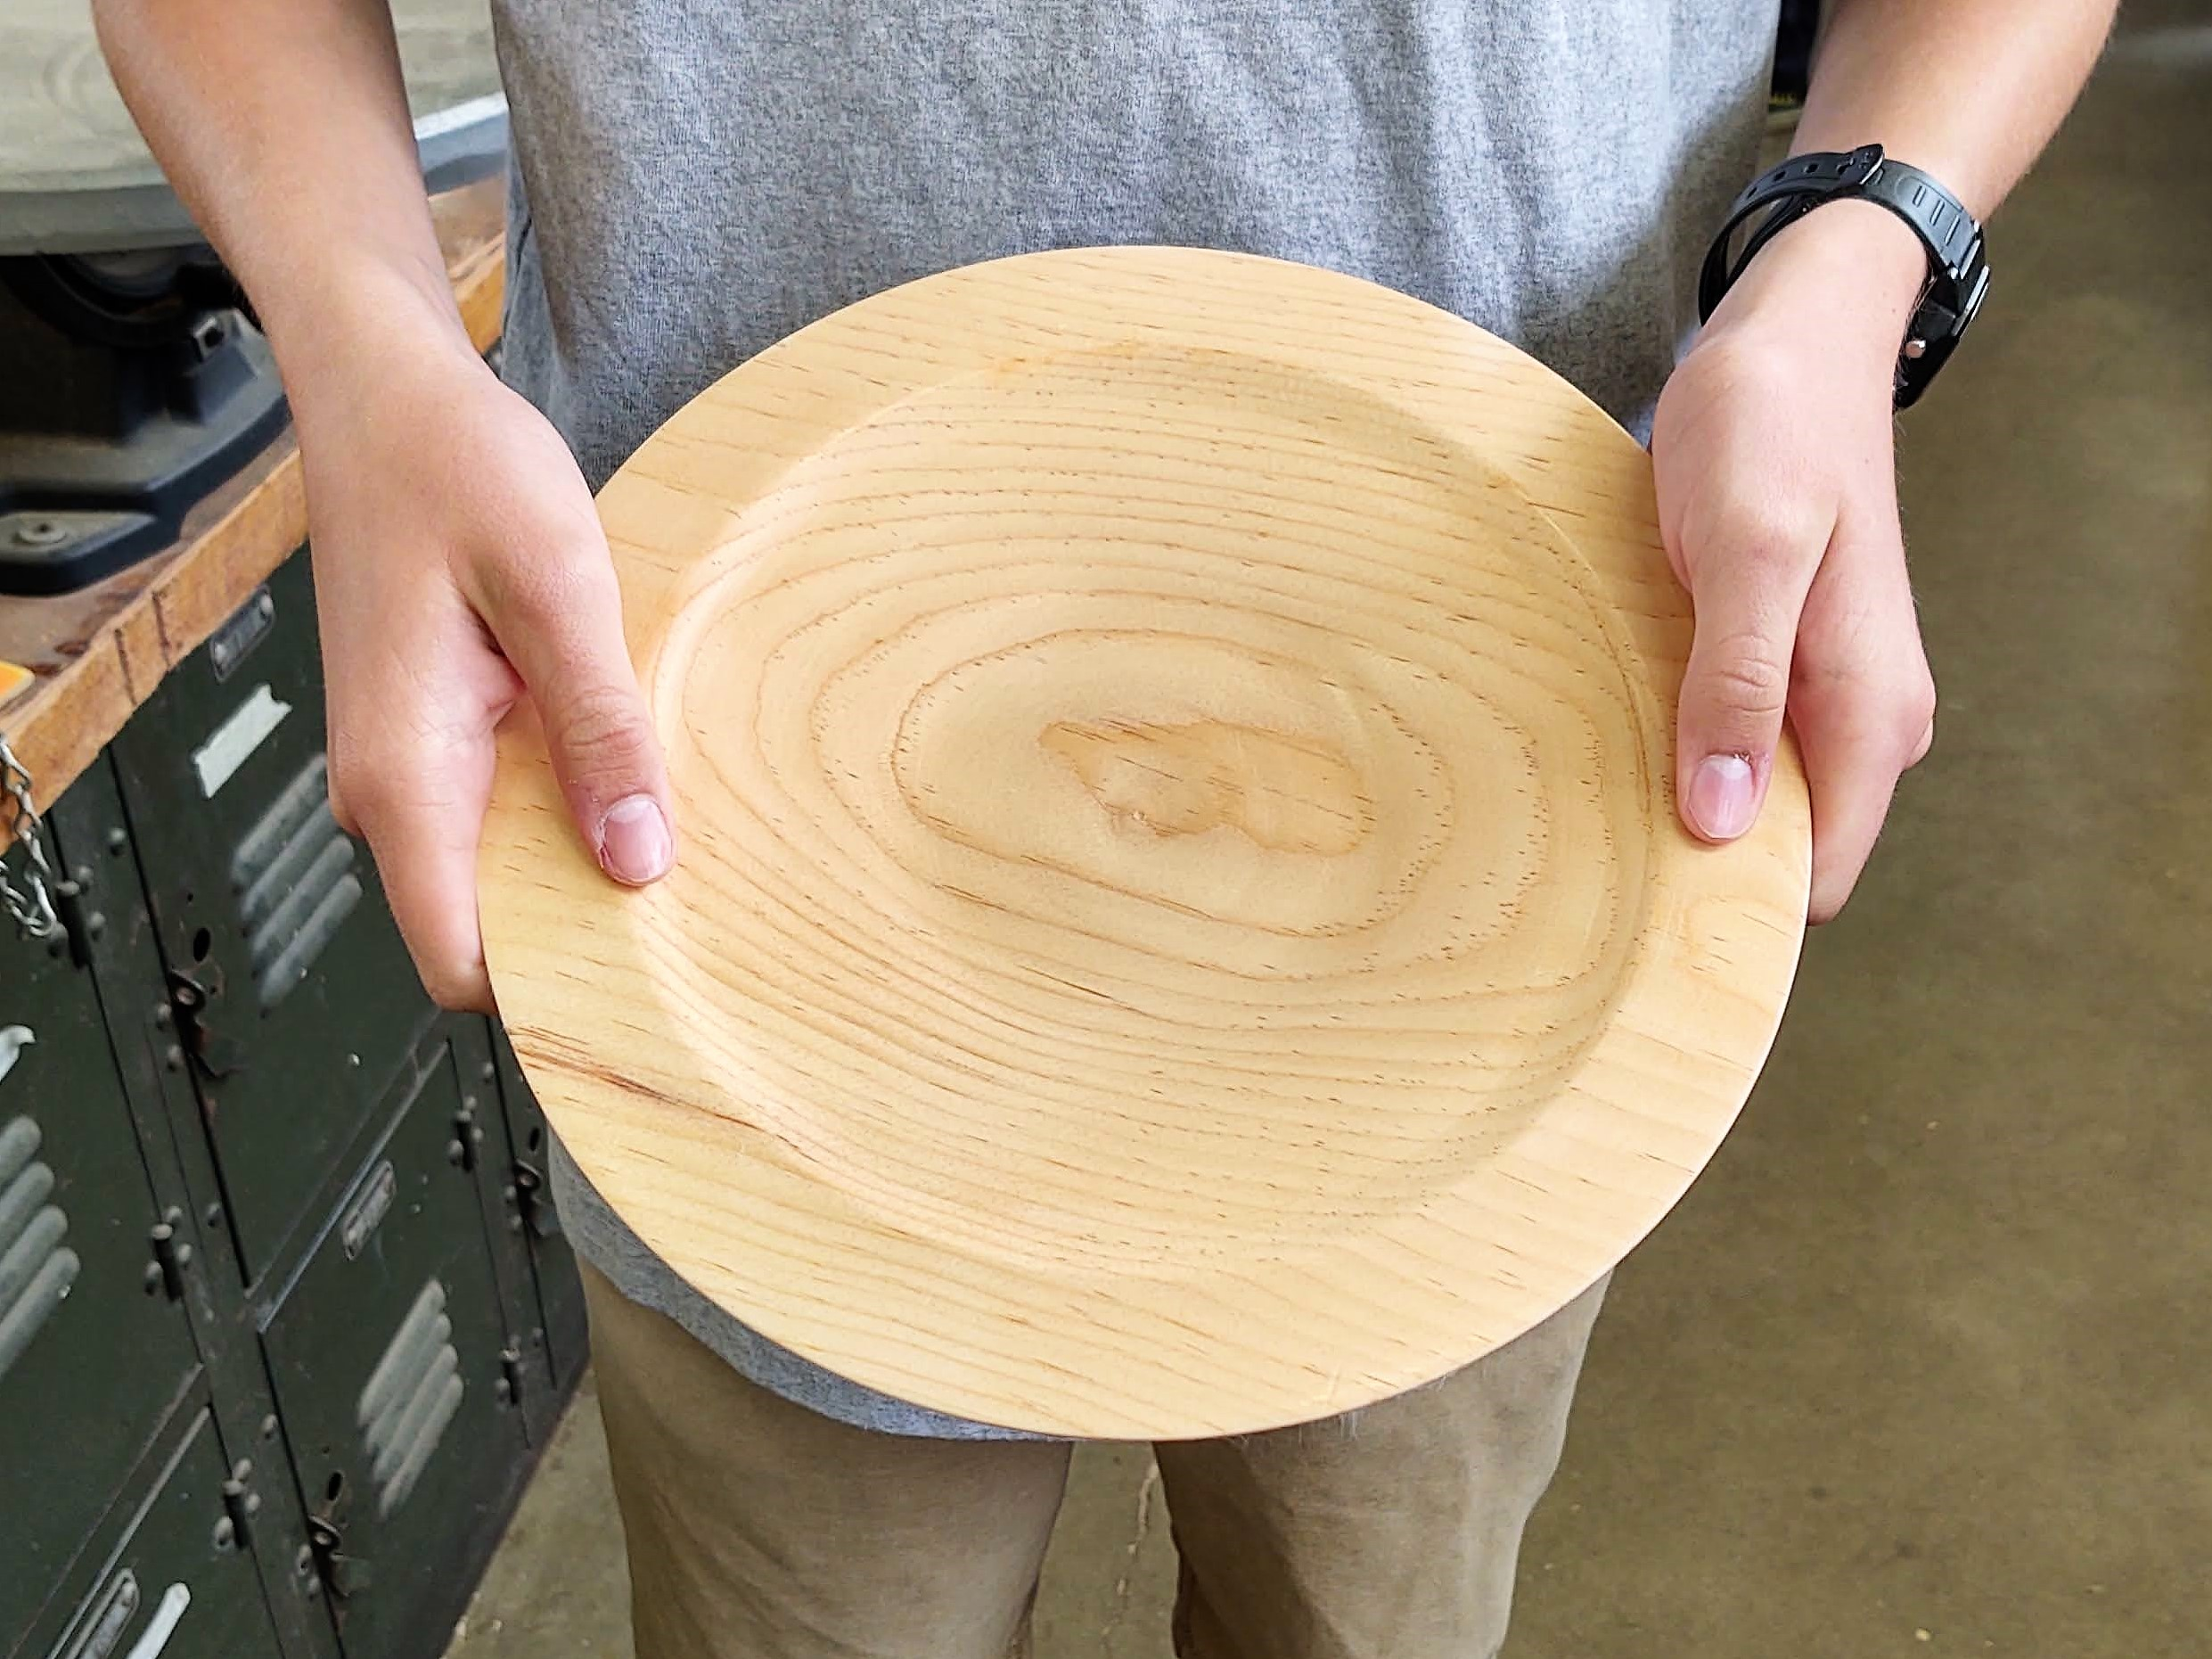 This student made a simple and beautiful platter in woodshop.